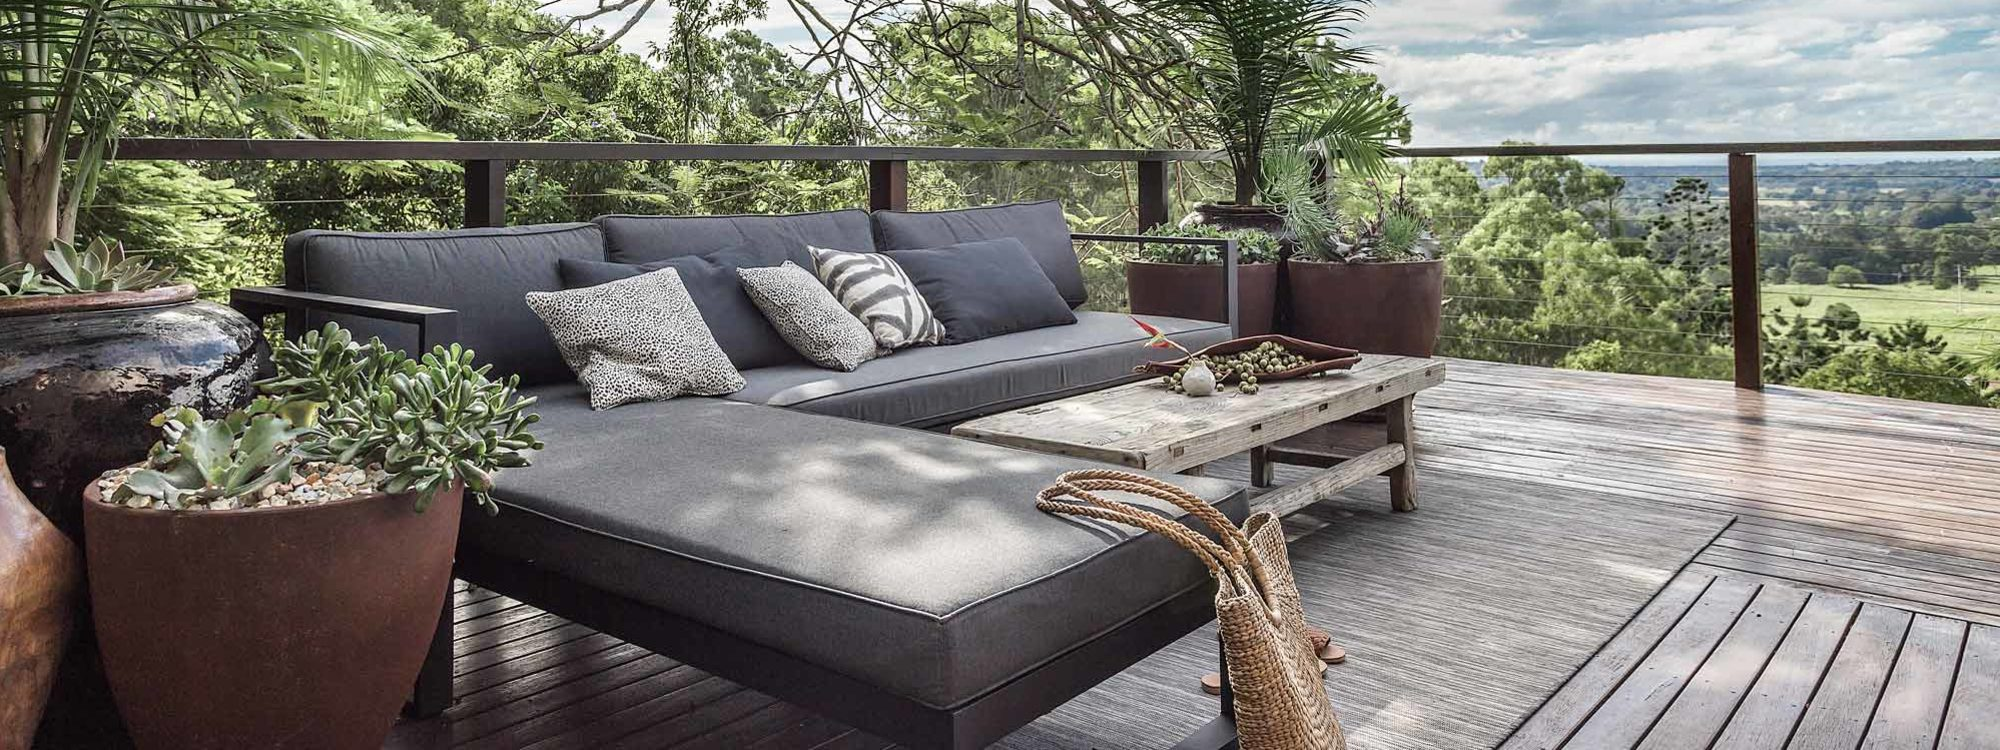 Eastern Rise - Byron Bay Hinterland - Outdoor lounge Area 3